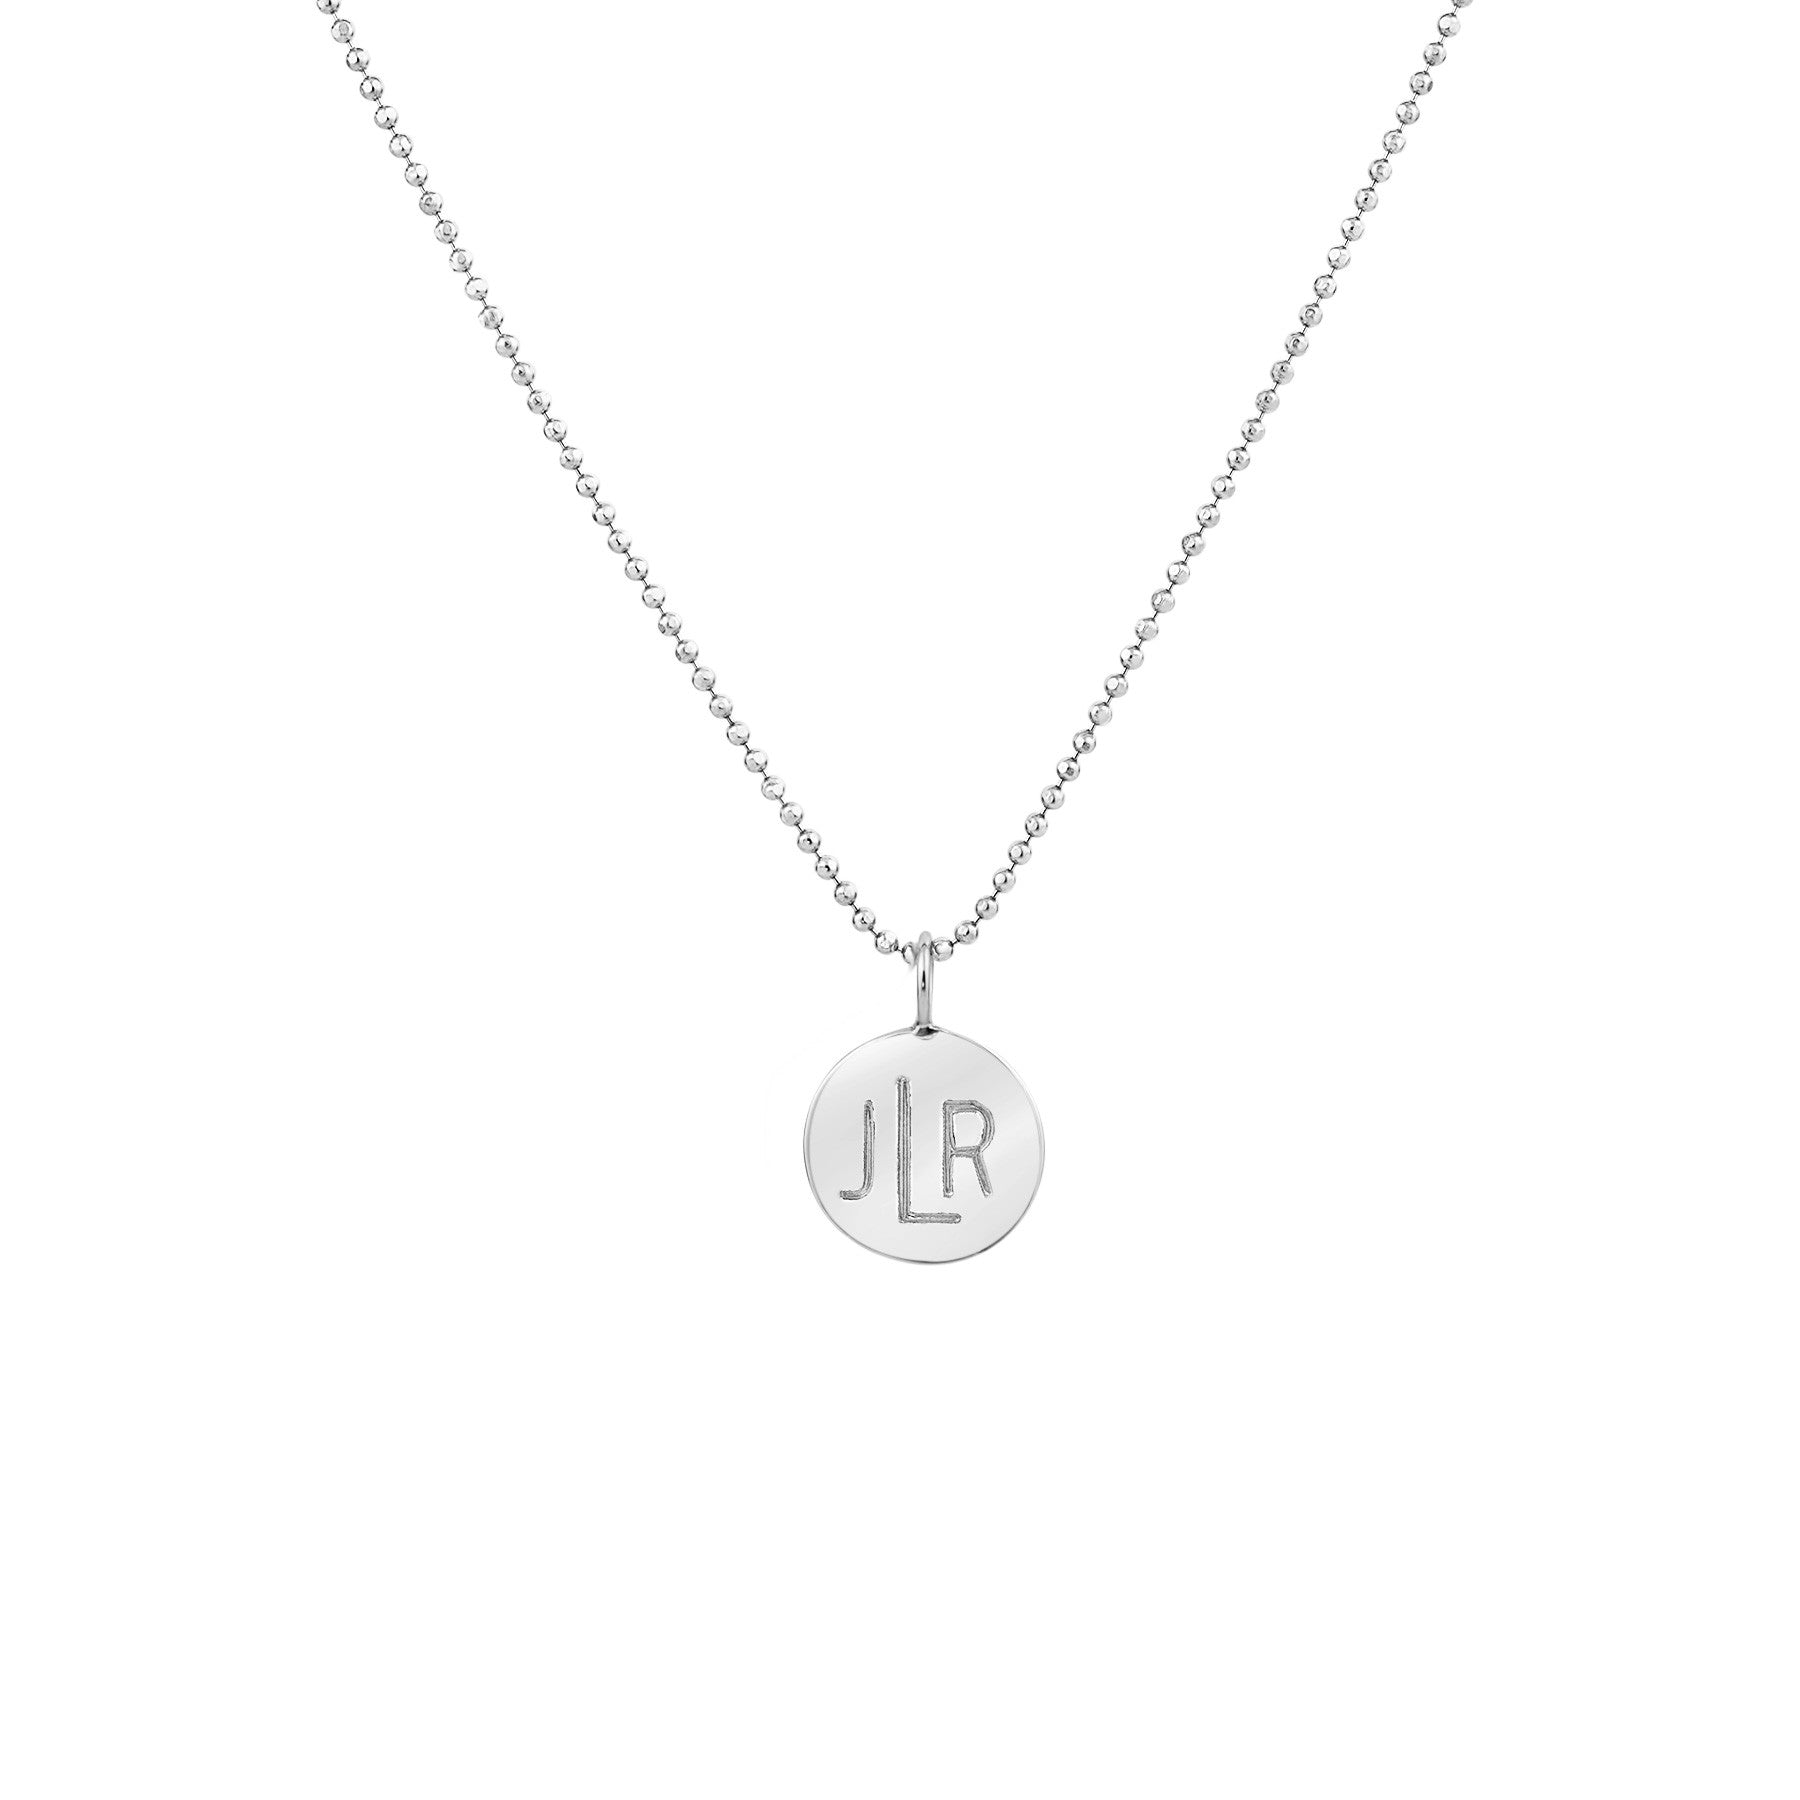 LARGE CIRCLE MONOGRAM NECKLACE STERLING SILVER